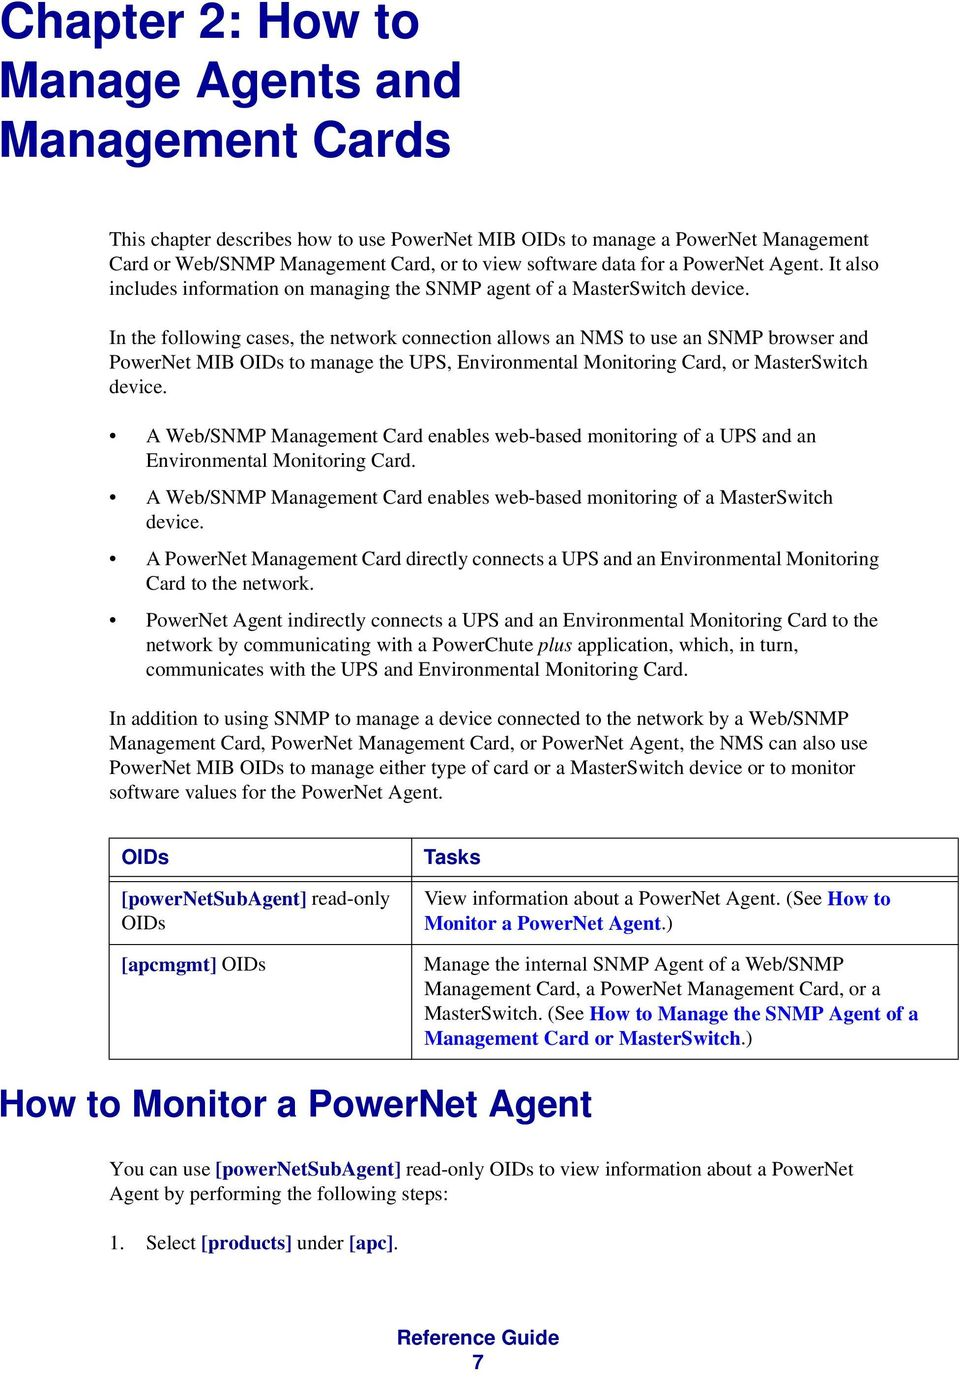 In the following cases, the network connection allows an NMS to use an SNMP browser and PowerNet MIB s to manage the UPS, Environmental Monitoring Card, or MasterSwitch device.